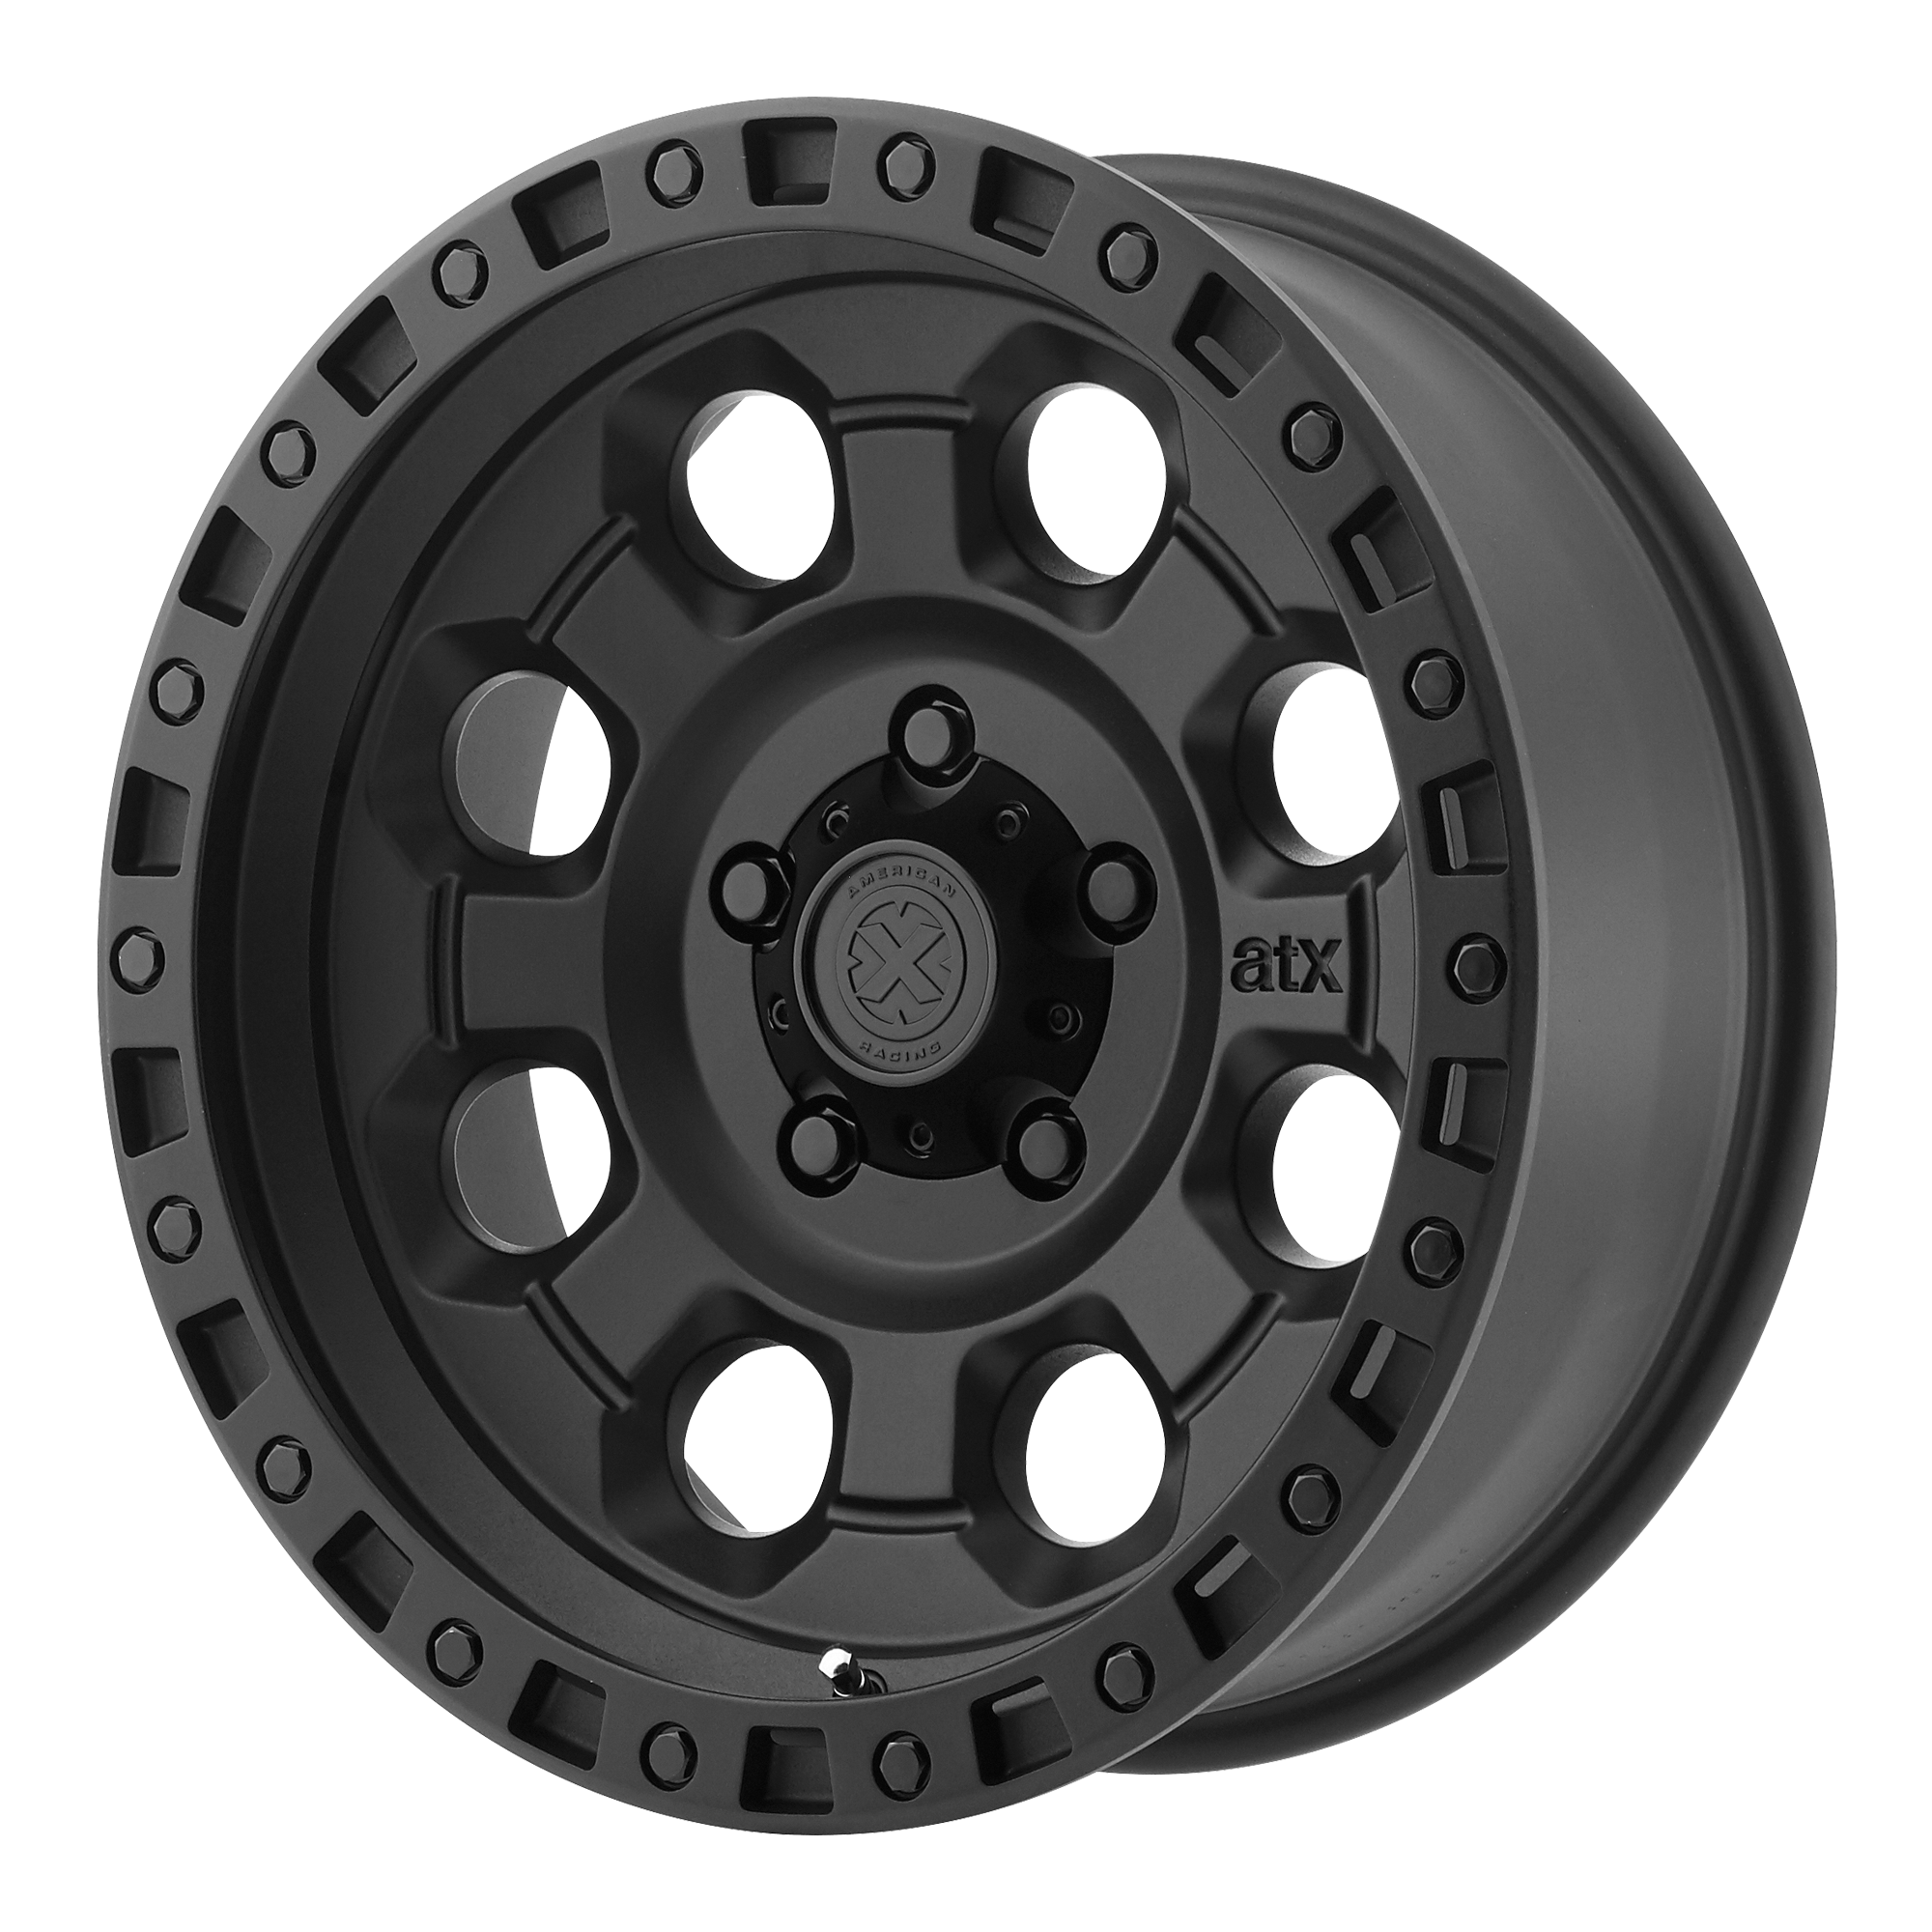 ATX Series Offroad Wheels AX201 Cast Iron Black